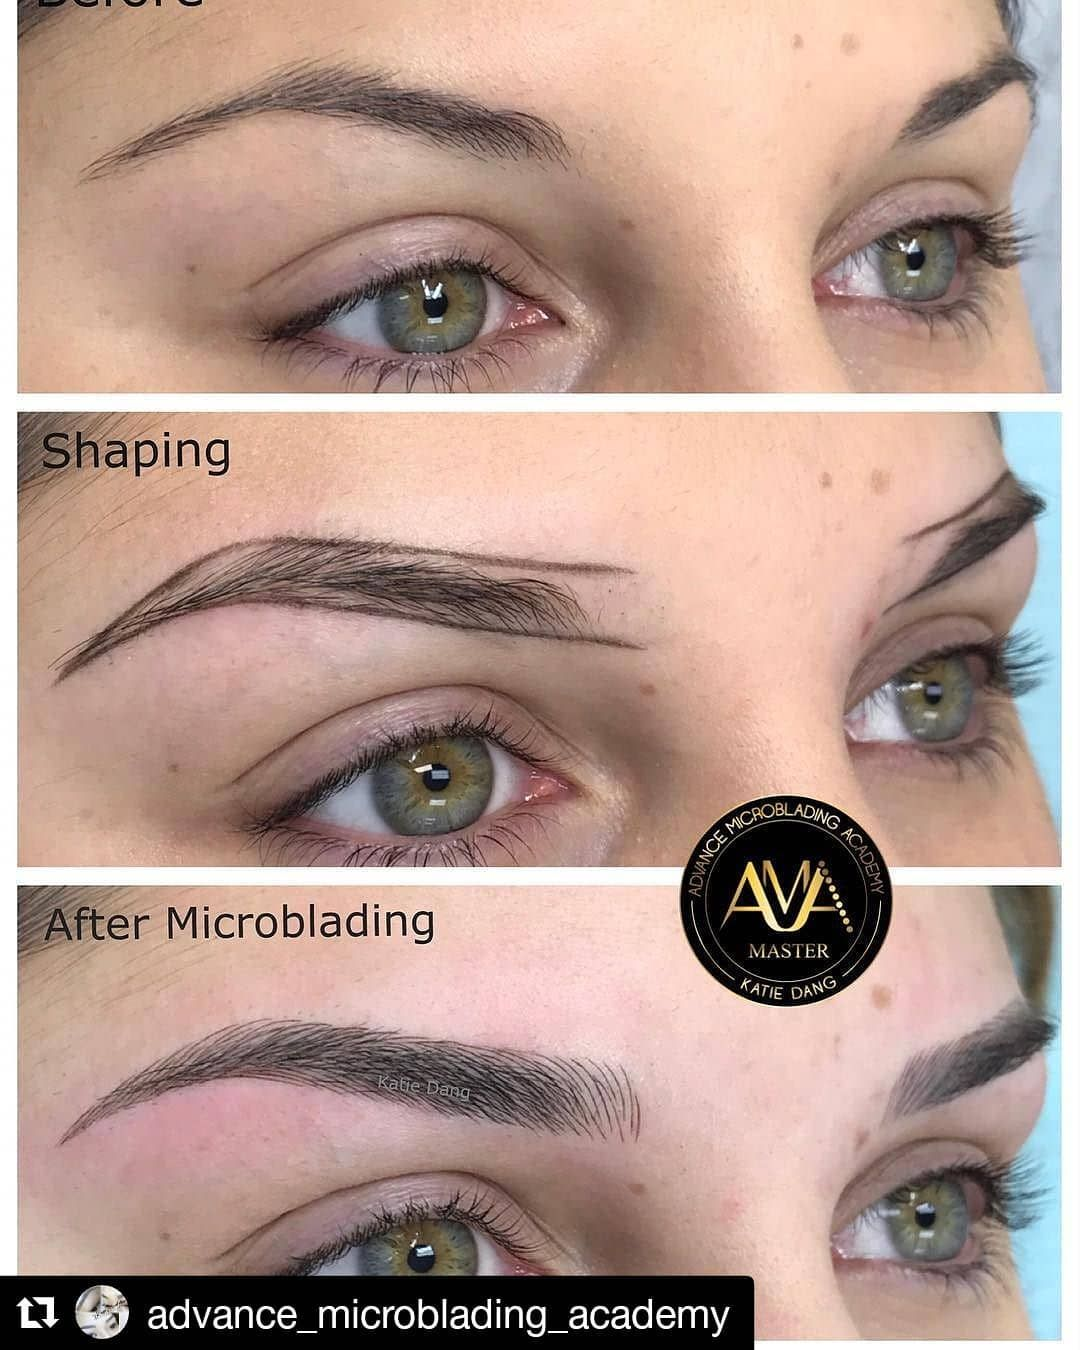 Repost @advance_microblading_academy (@get_repost) Classic